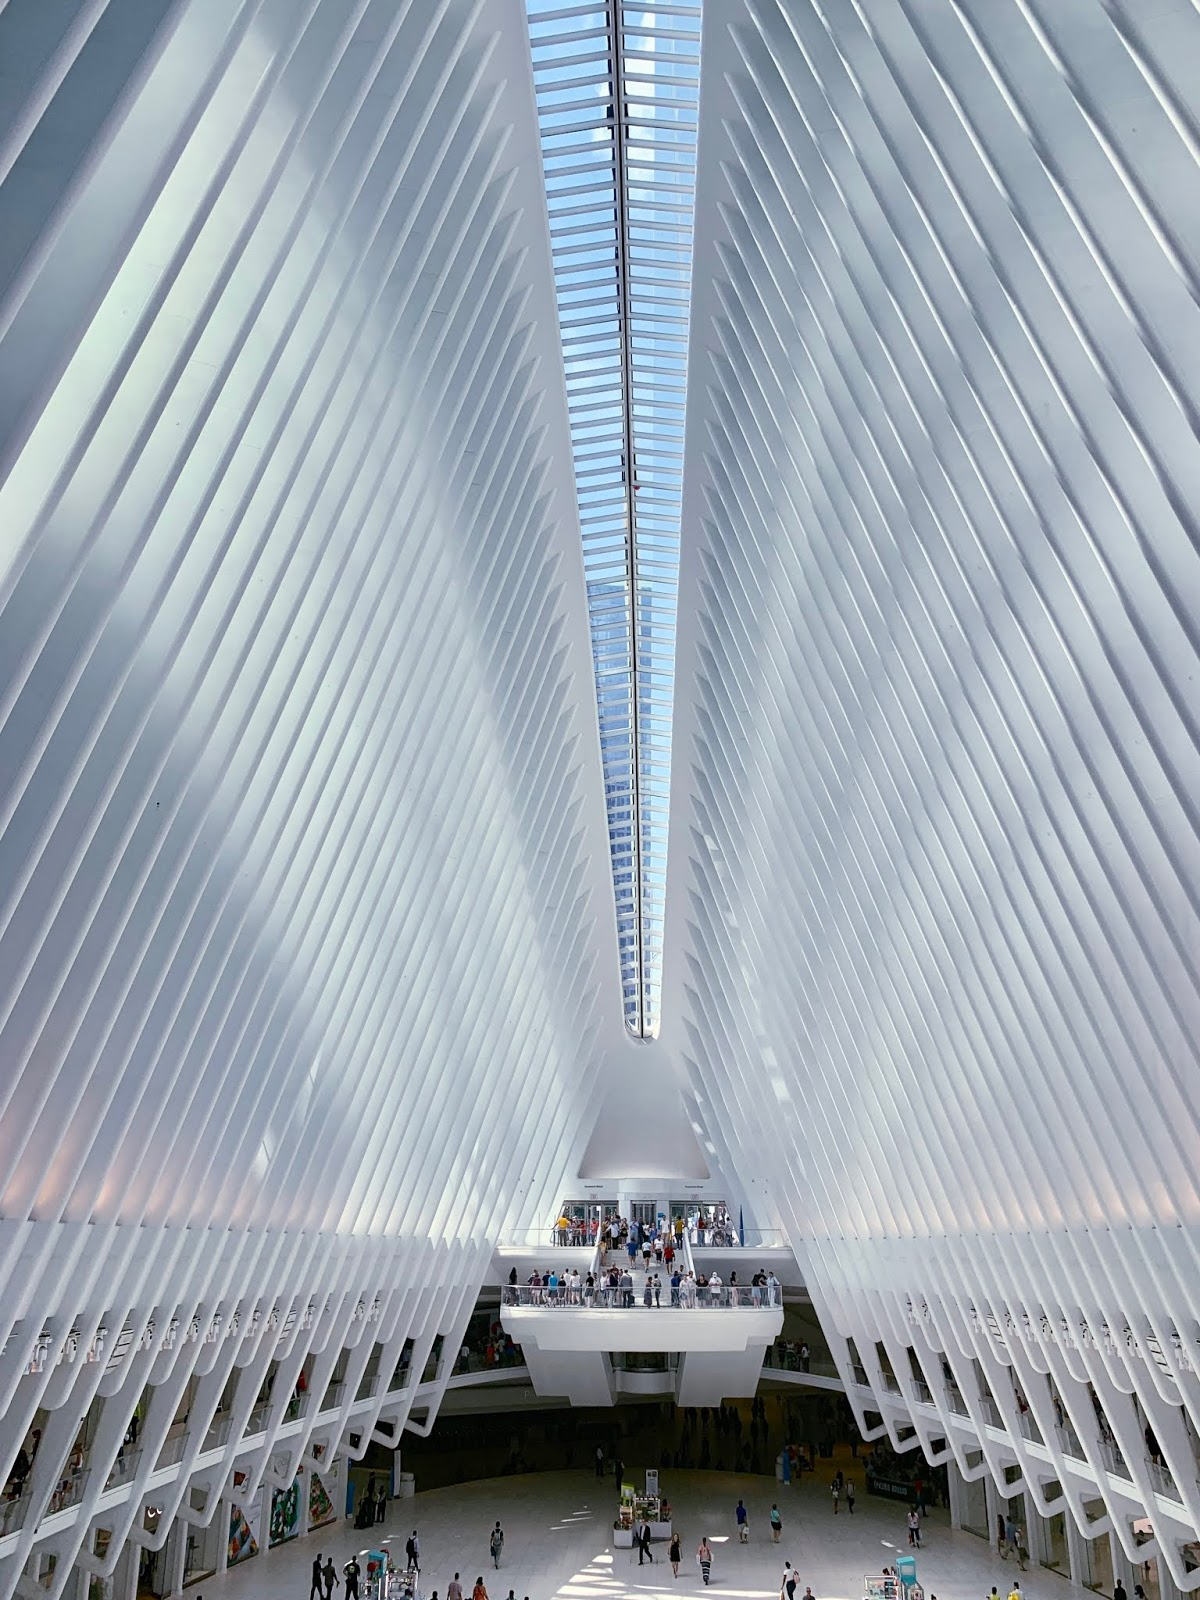 The Oculus is one of New York City's must-see attractions | Ms. Toody Goo Shoes